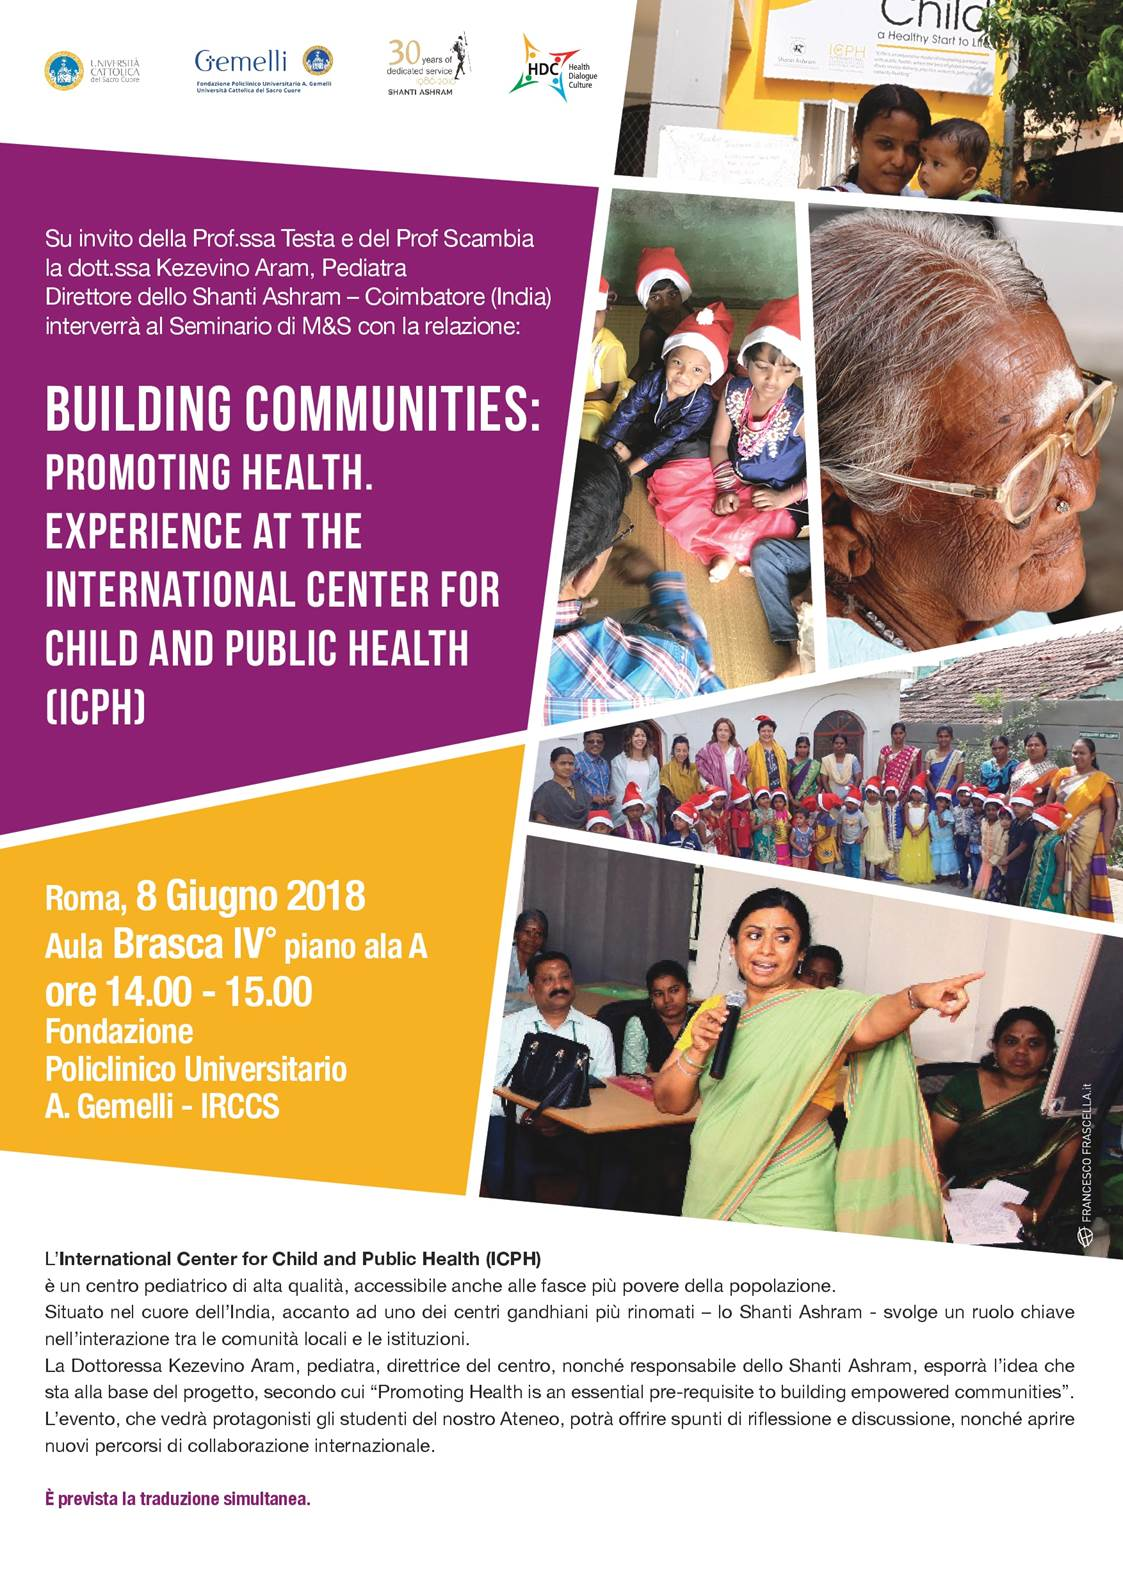 Seminario: Building Communities: Promoting Health. Experience At The International Center For Child And Public Health (Icph) - Aula Brasca 8 Giugno 2018 ore 14.00